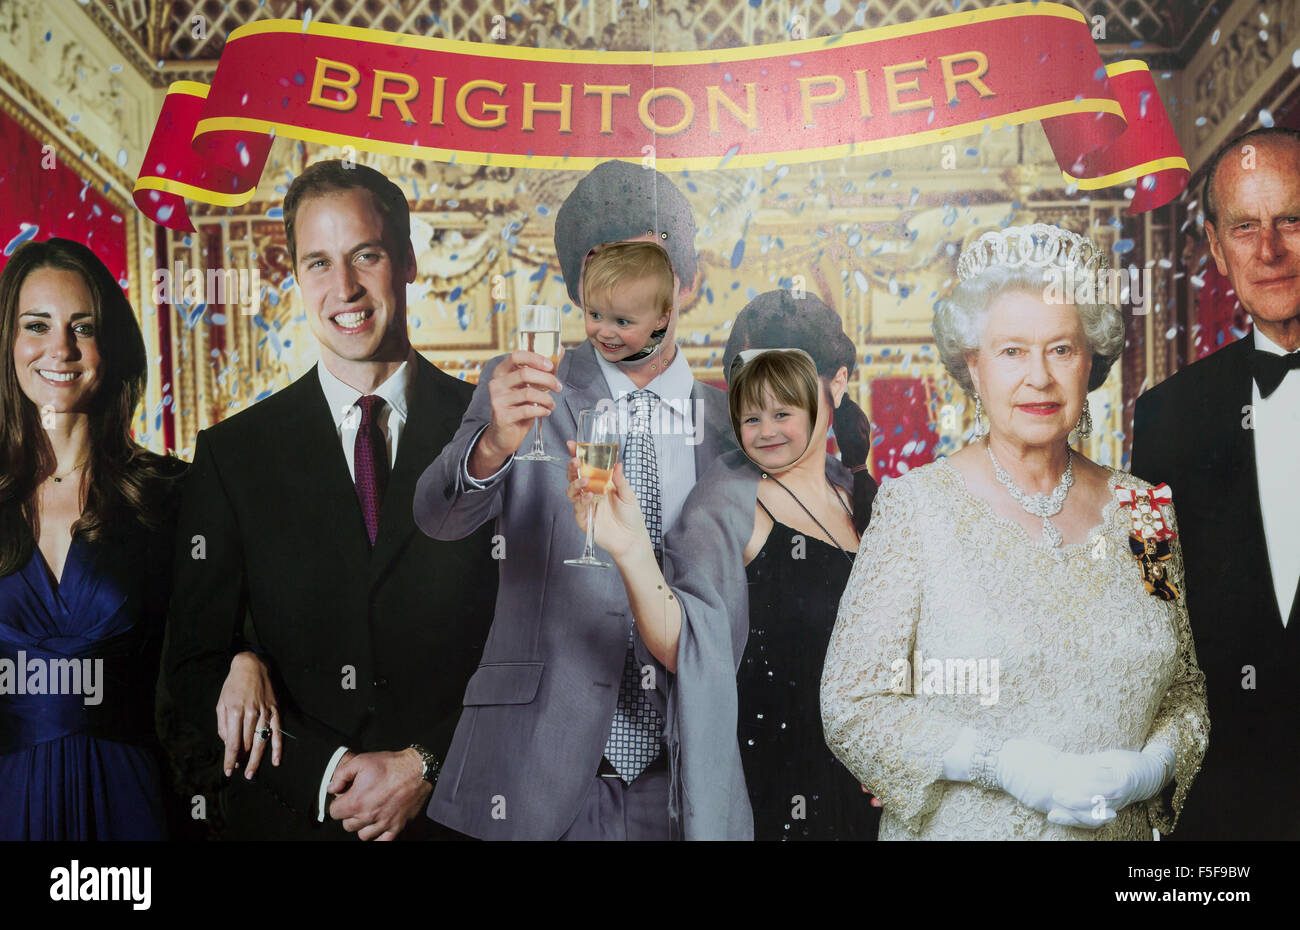 Brighton, United Kingdom, photo wall with the Royal Family - Stock Image